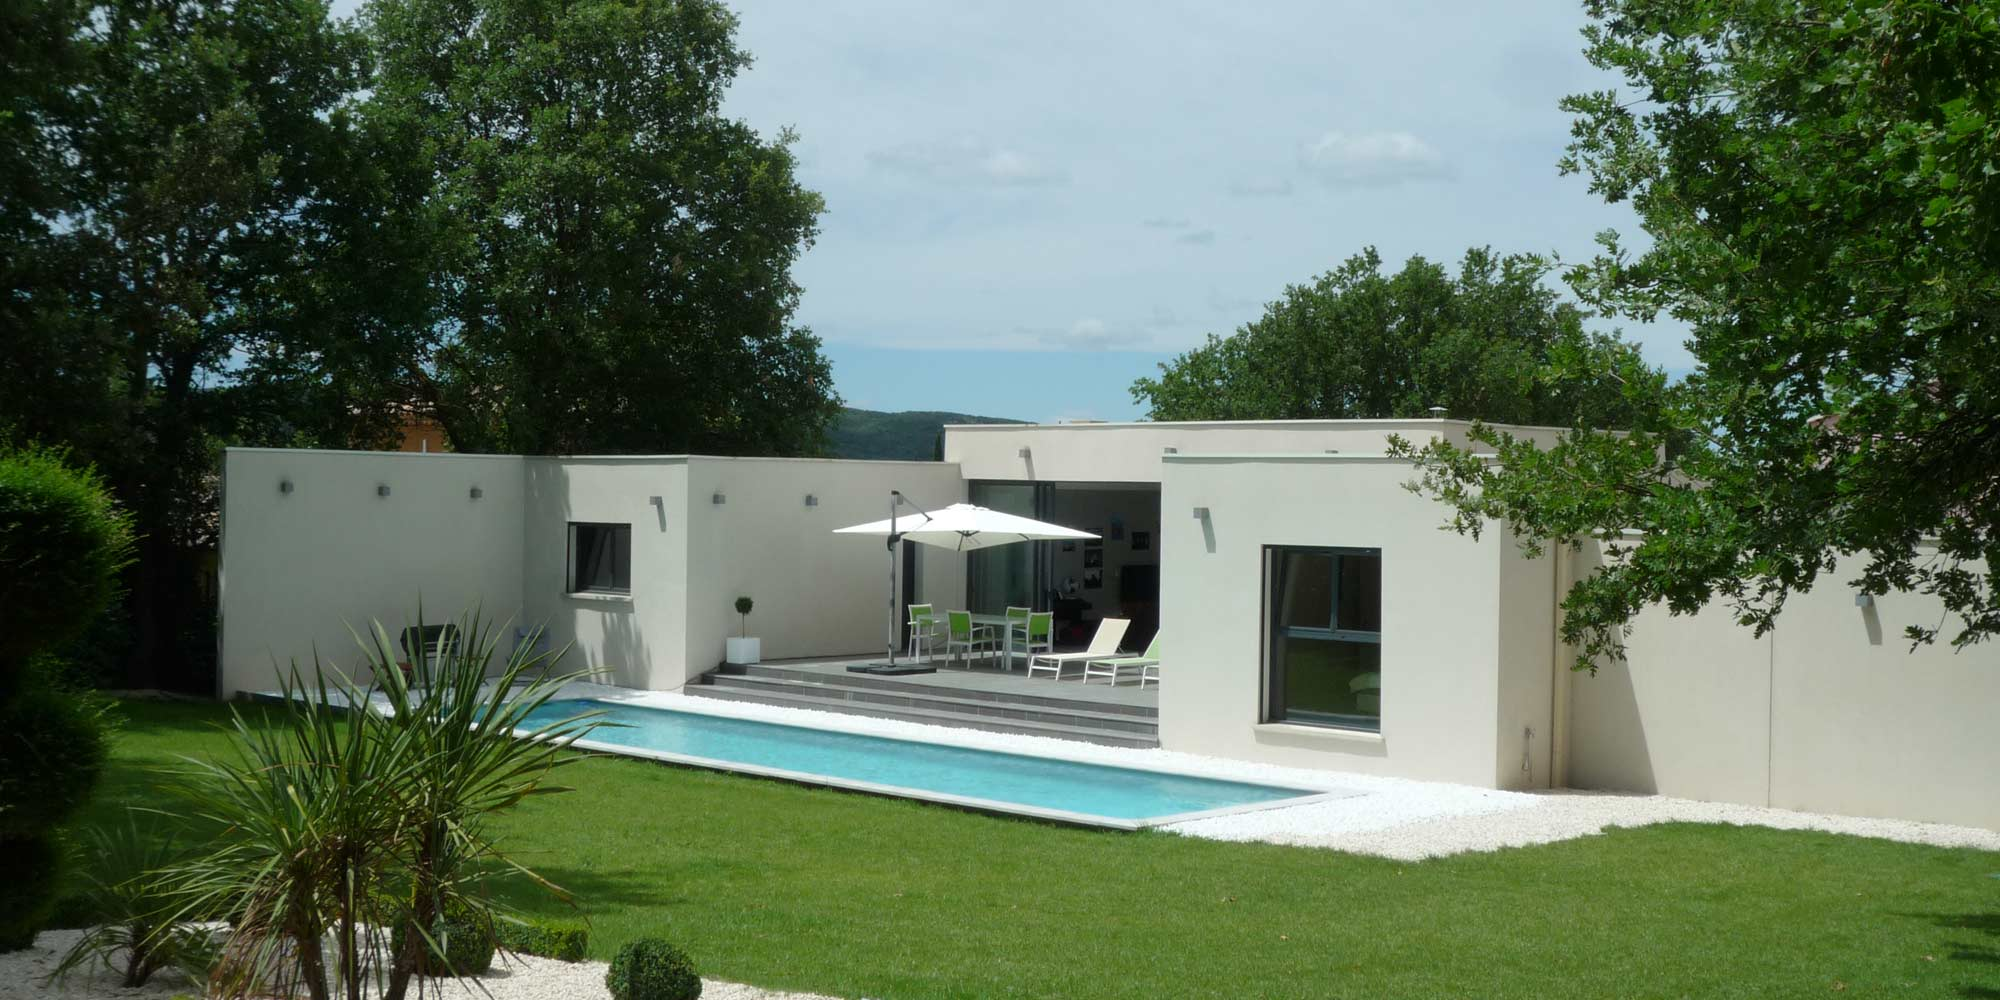 Villa au design résolument contemporain